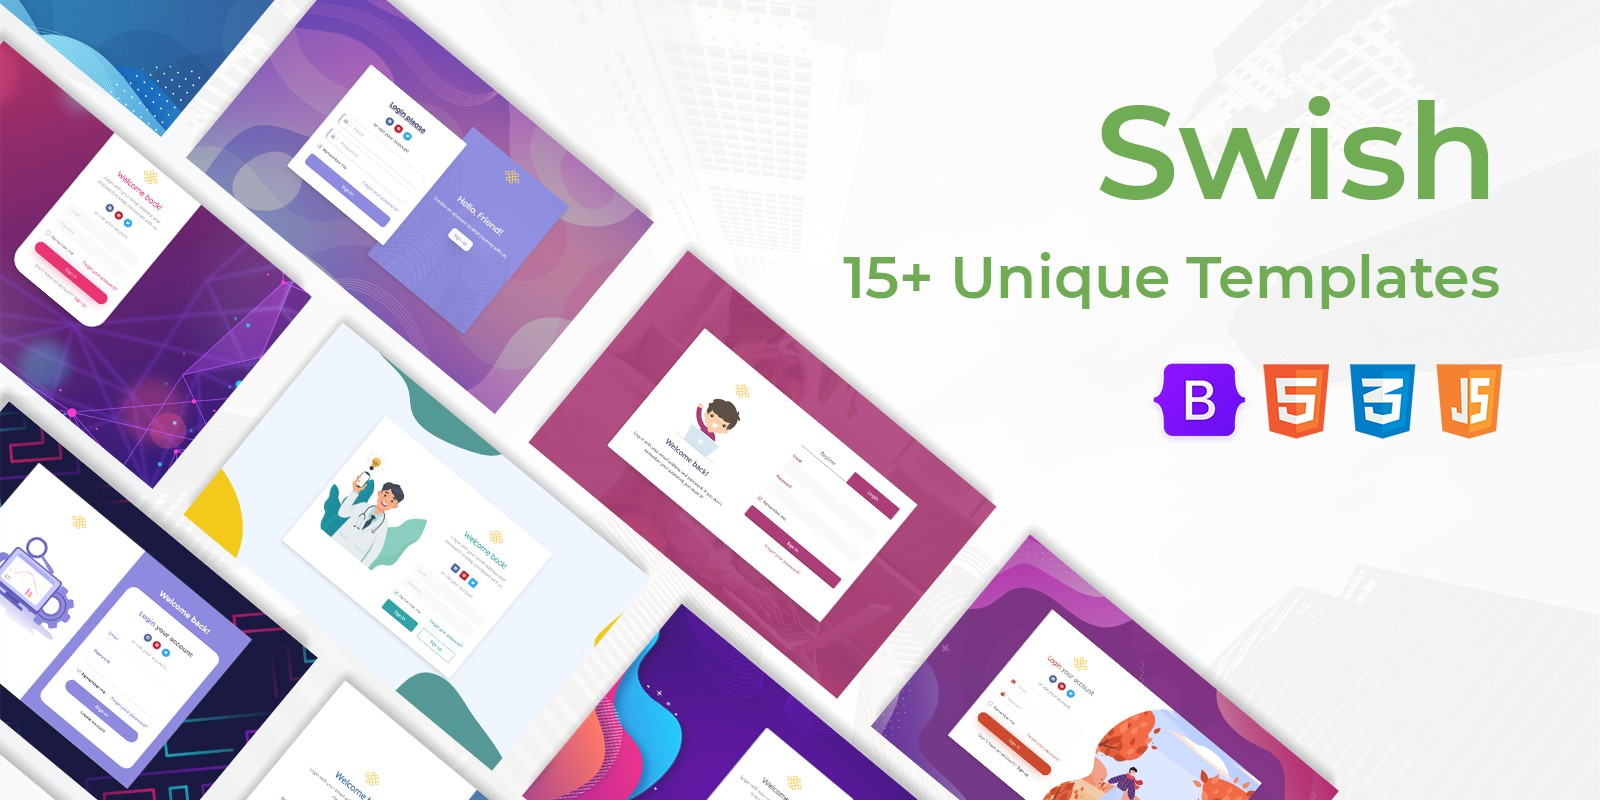 Swish - Login and Register HTML5 Templates